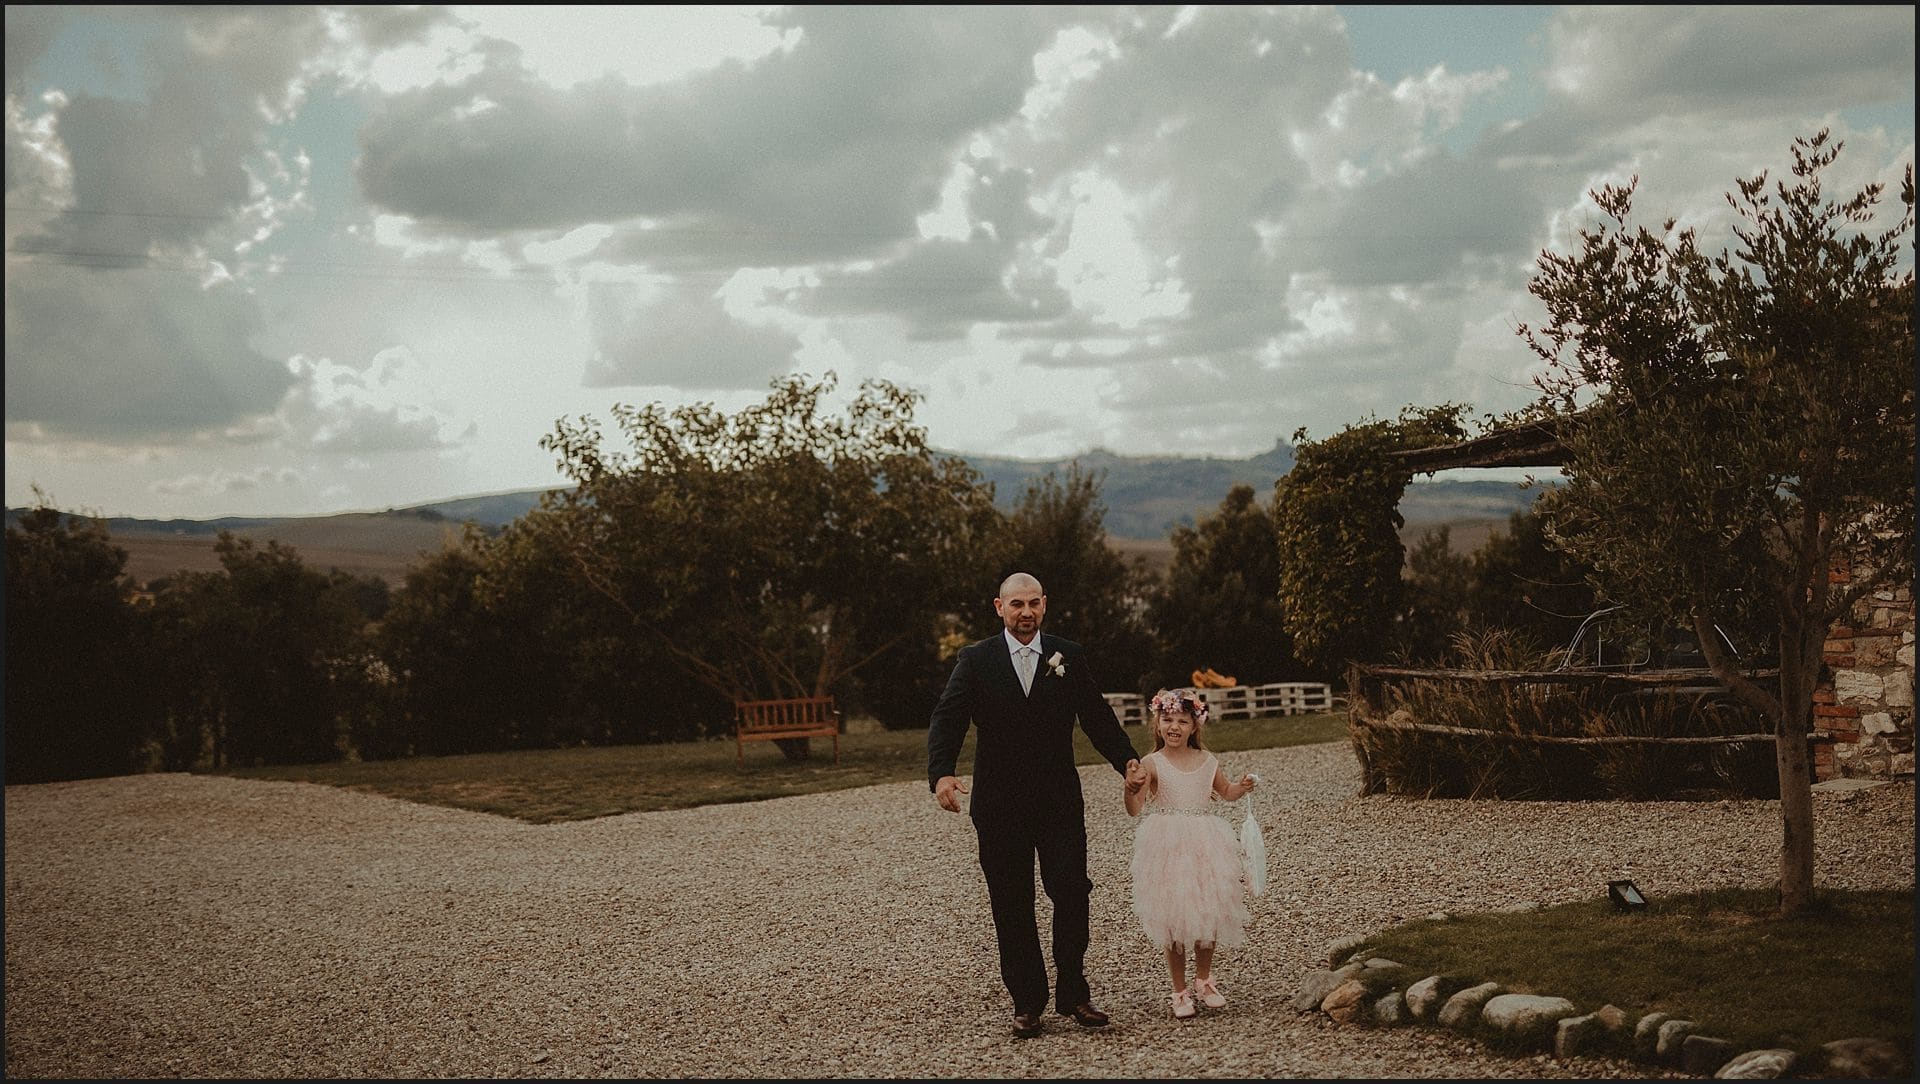 groom, daughter, intimate wedding, destination wedding photographer, val d'orcia